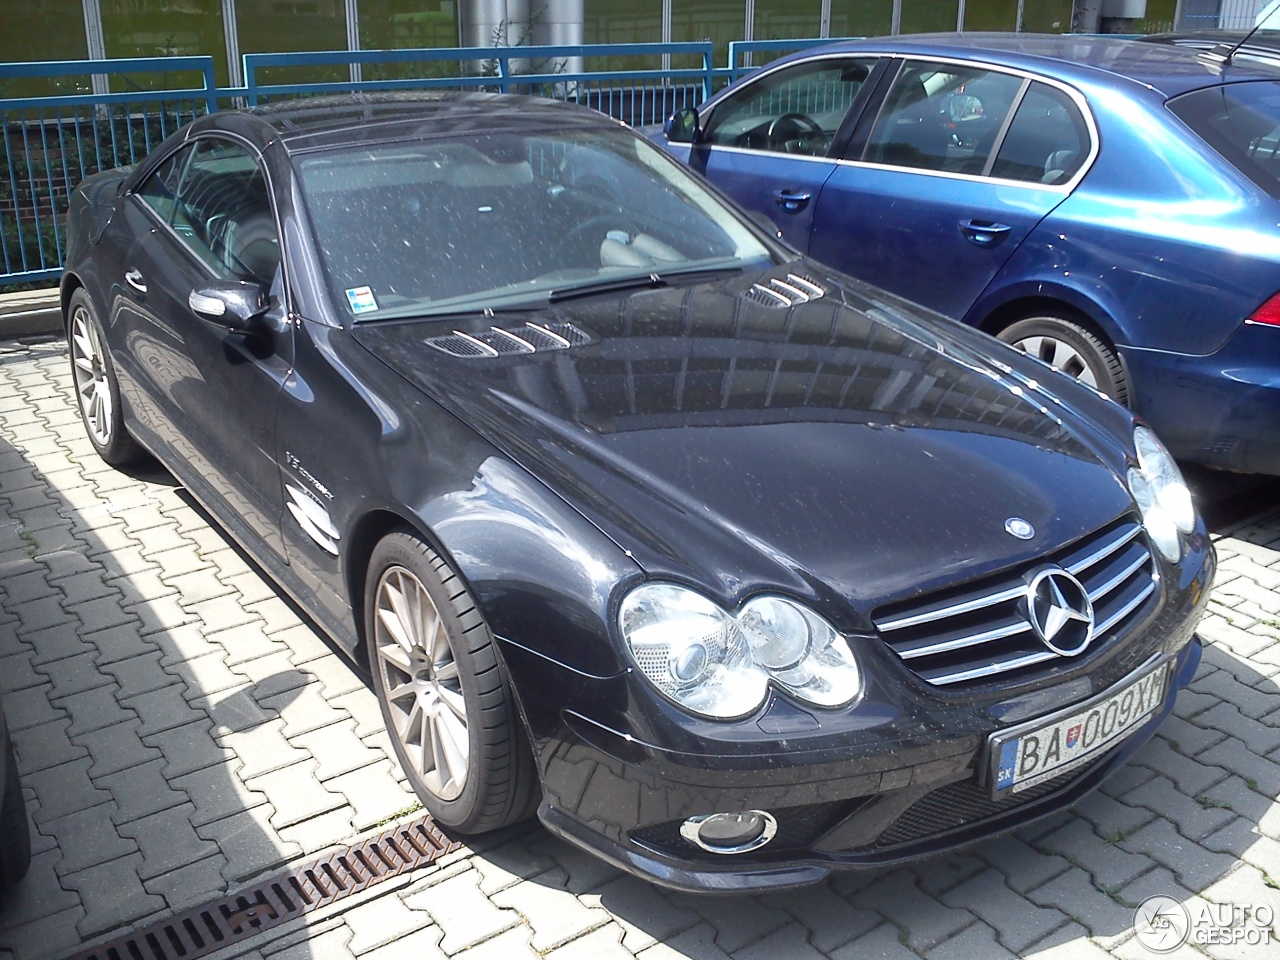 Mercedes benz sl 55 amg r230 2006 16 may 2015 autogespot for Mercedes benz sl550 amg price